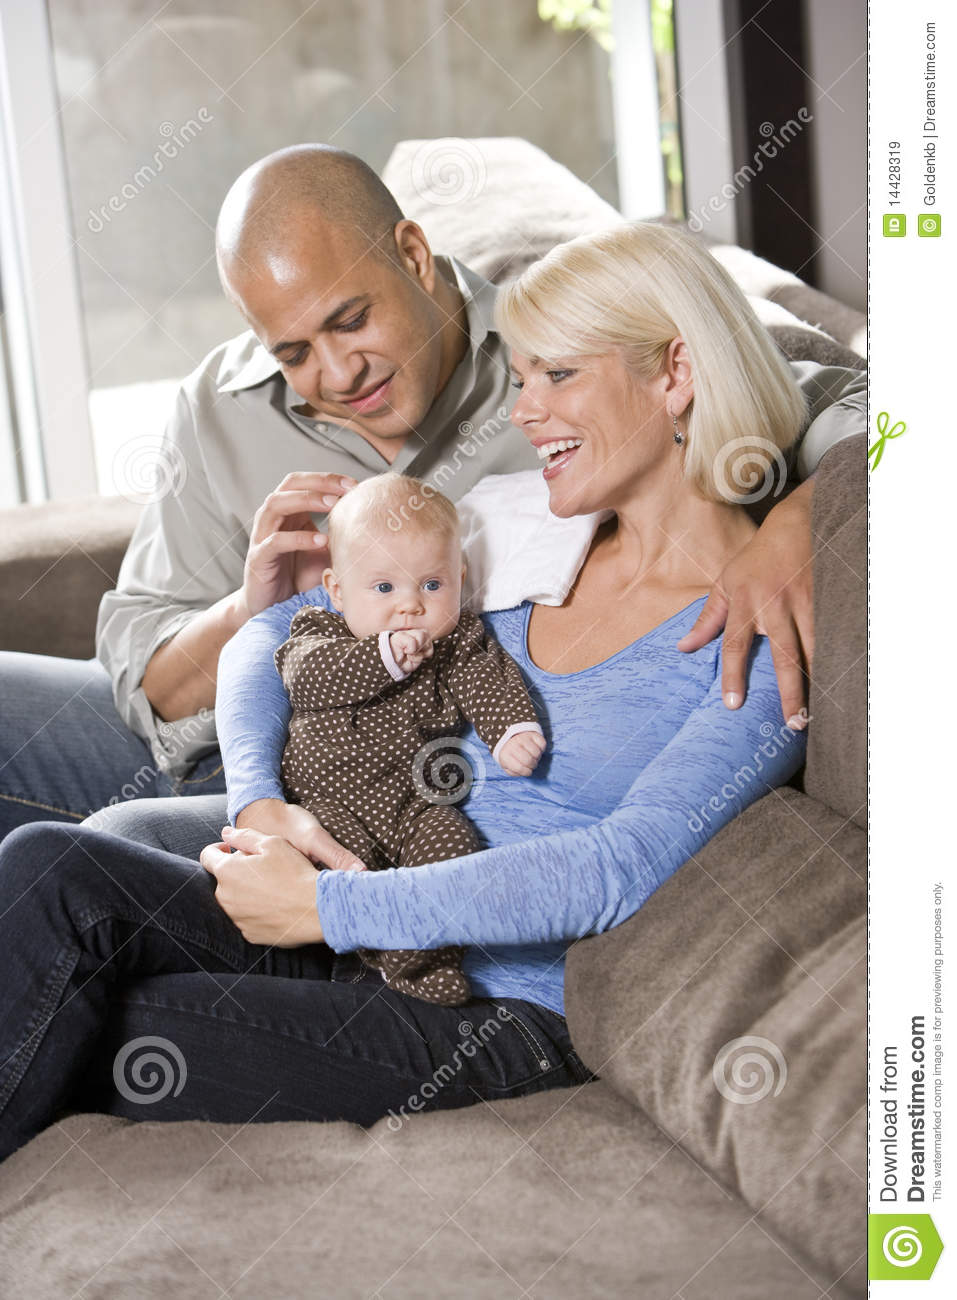 Living Room Man With Baby Sitting